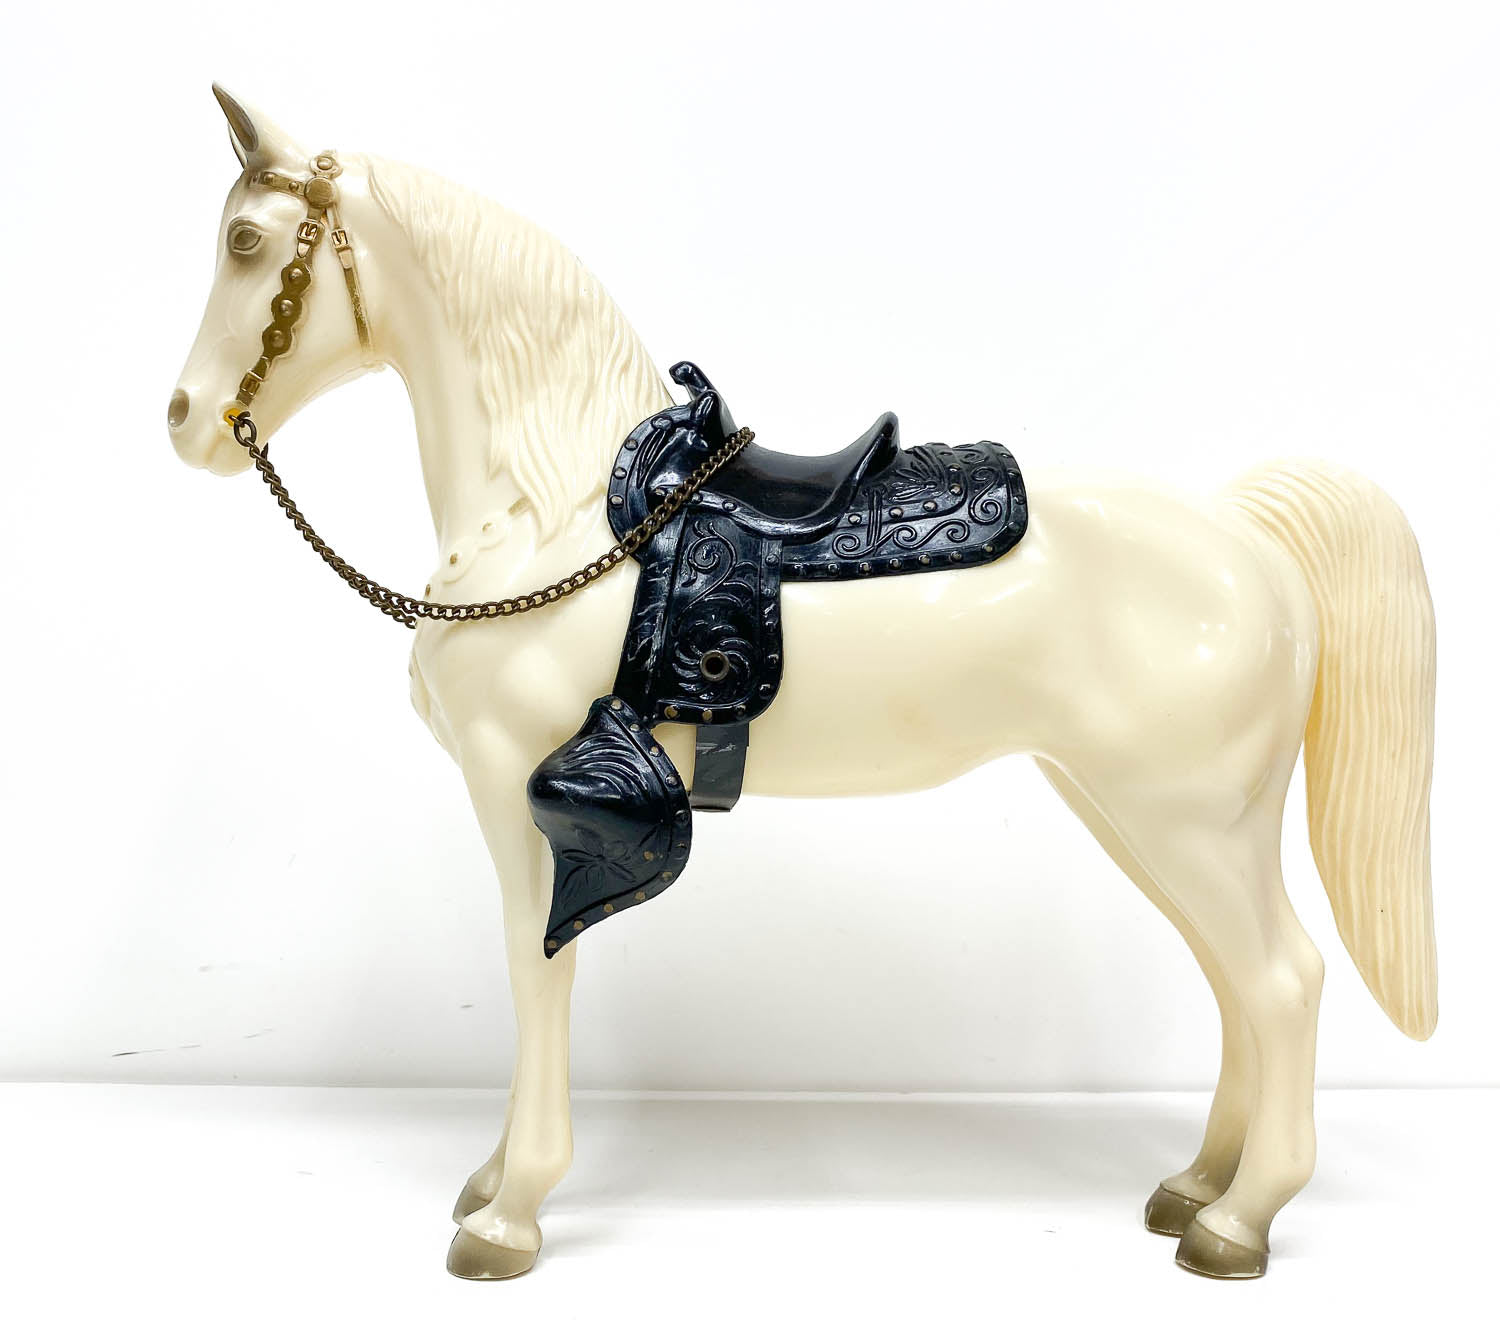 Western Horse, White - Breyer's First Release!  (Sale for charity)